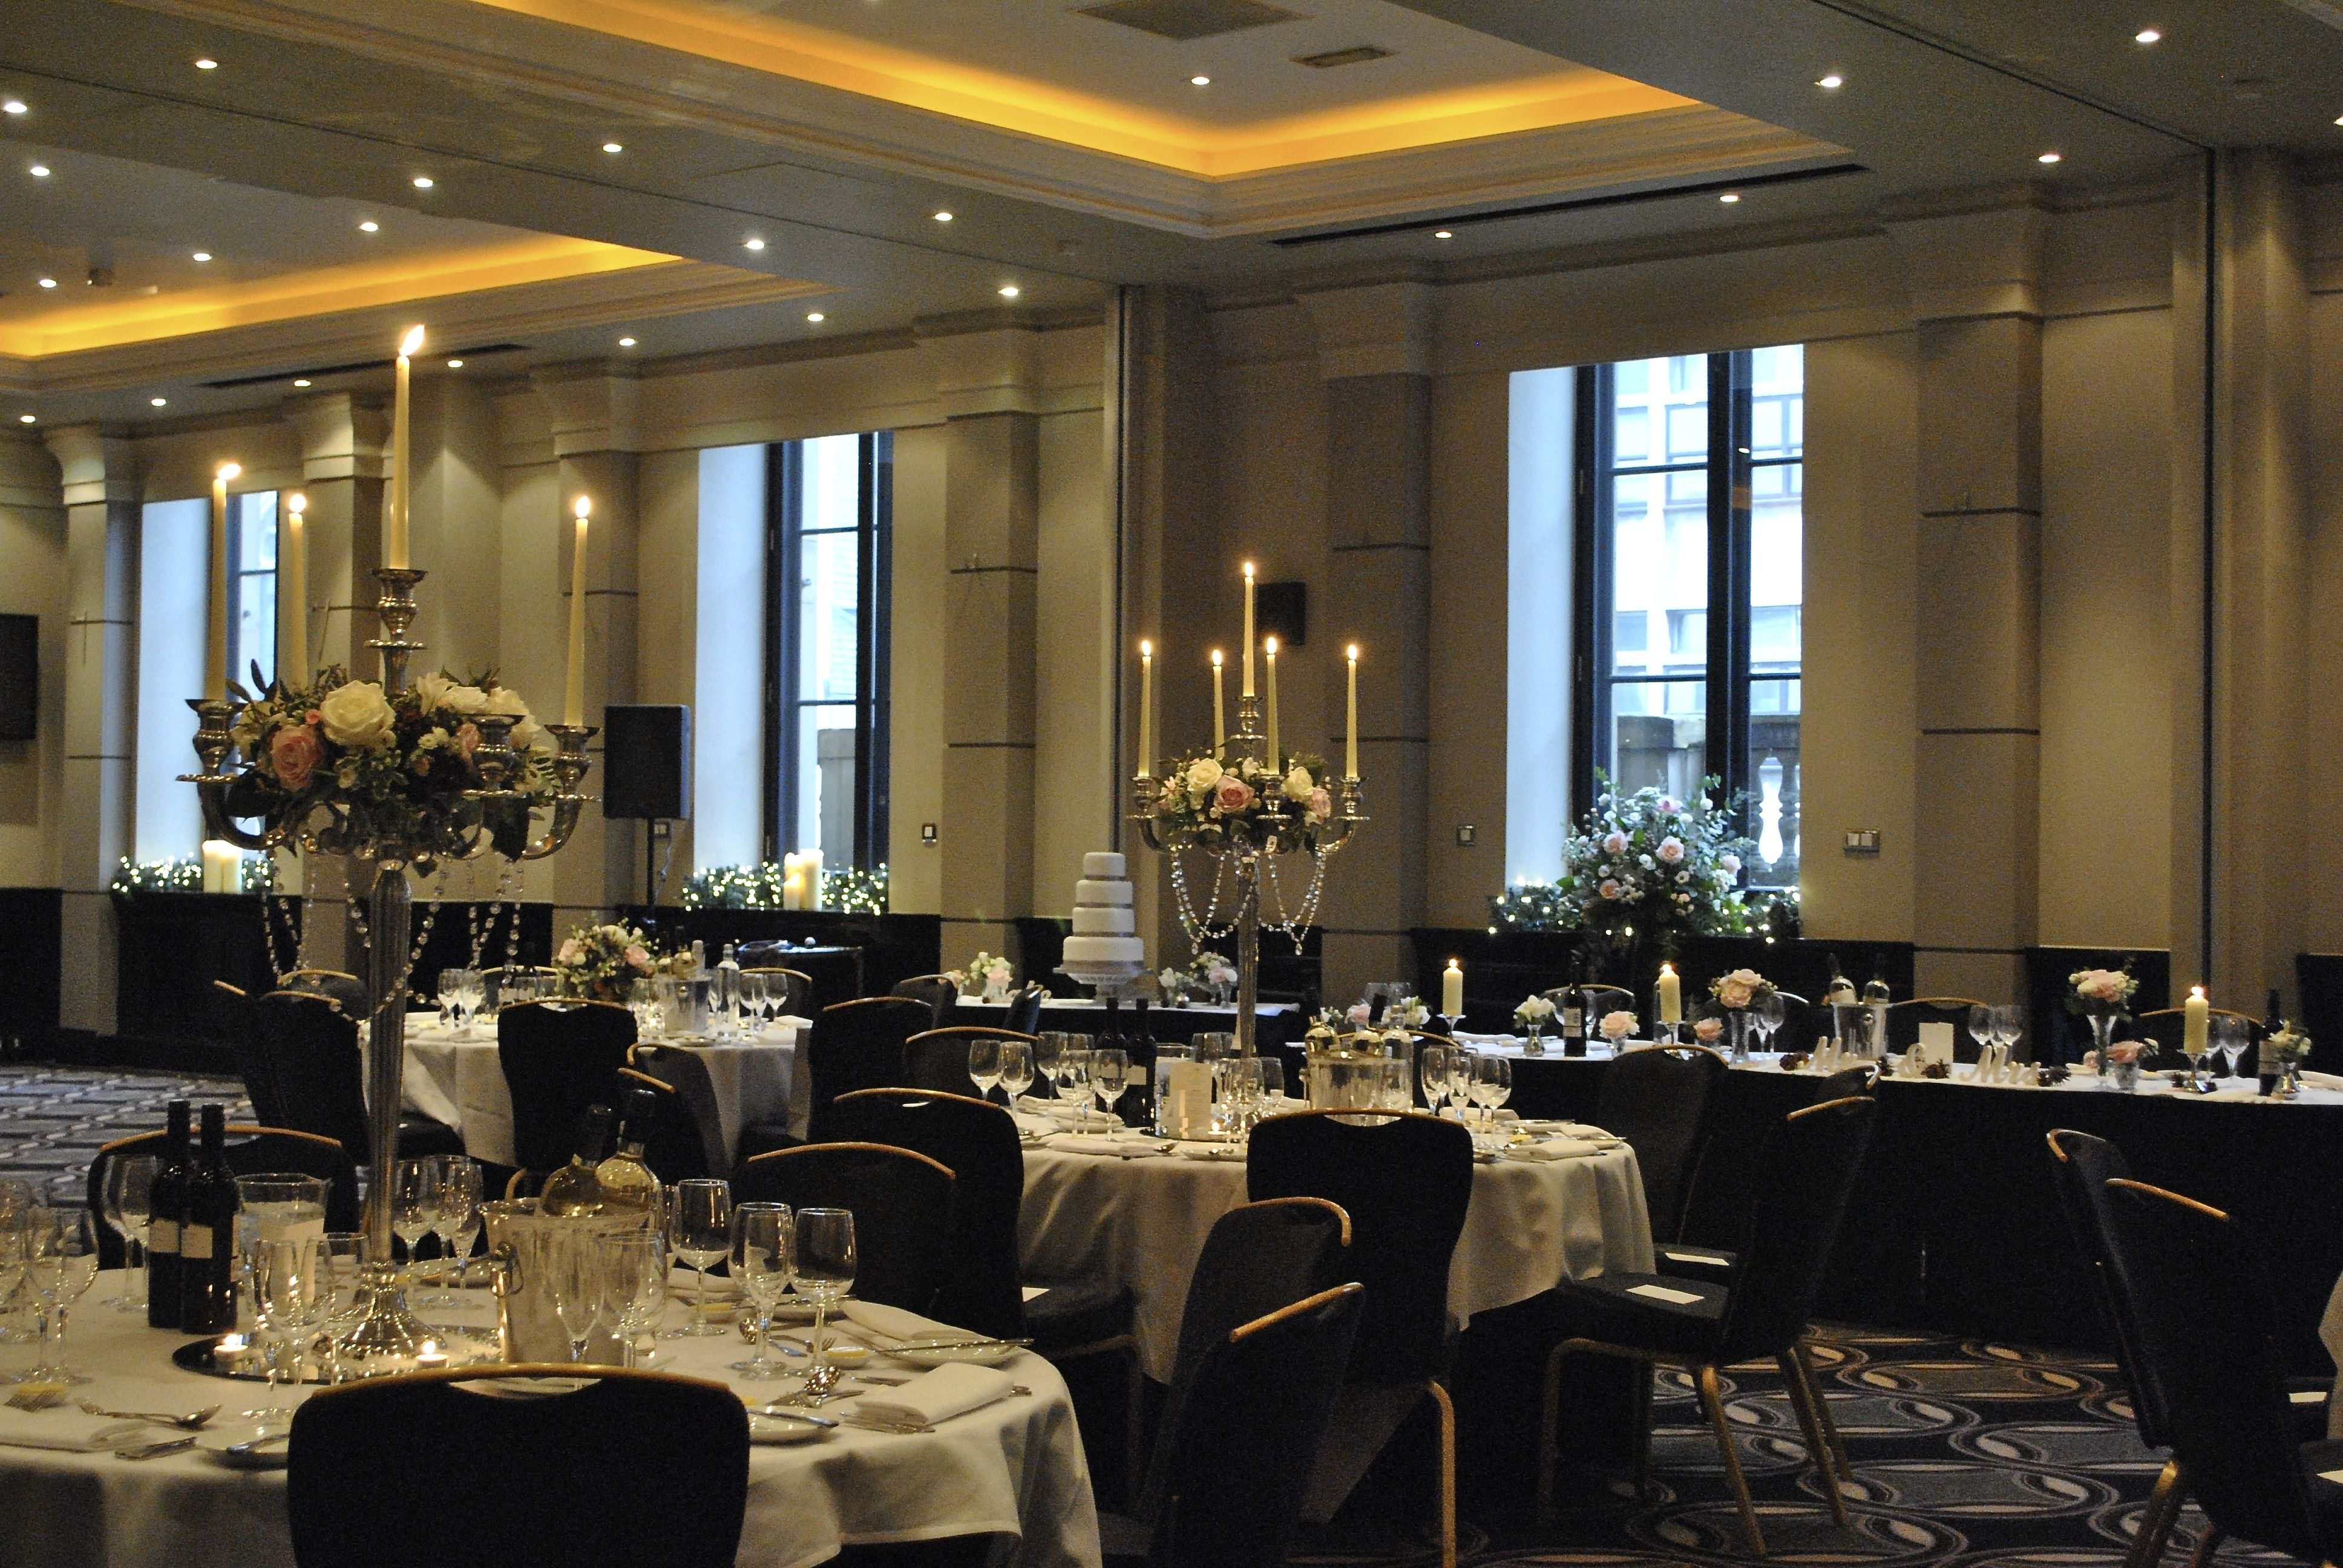 Round tables dressed in white linen and set for a dinner party in the Halle Suite Radisson Blu Edwardian Manchester Christmas Party, M2